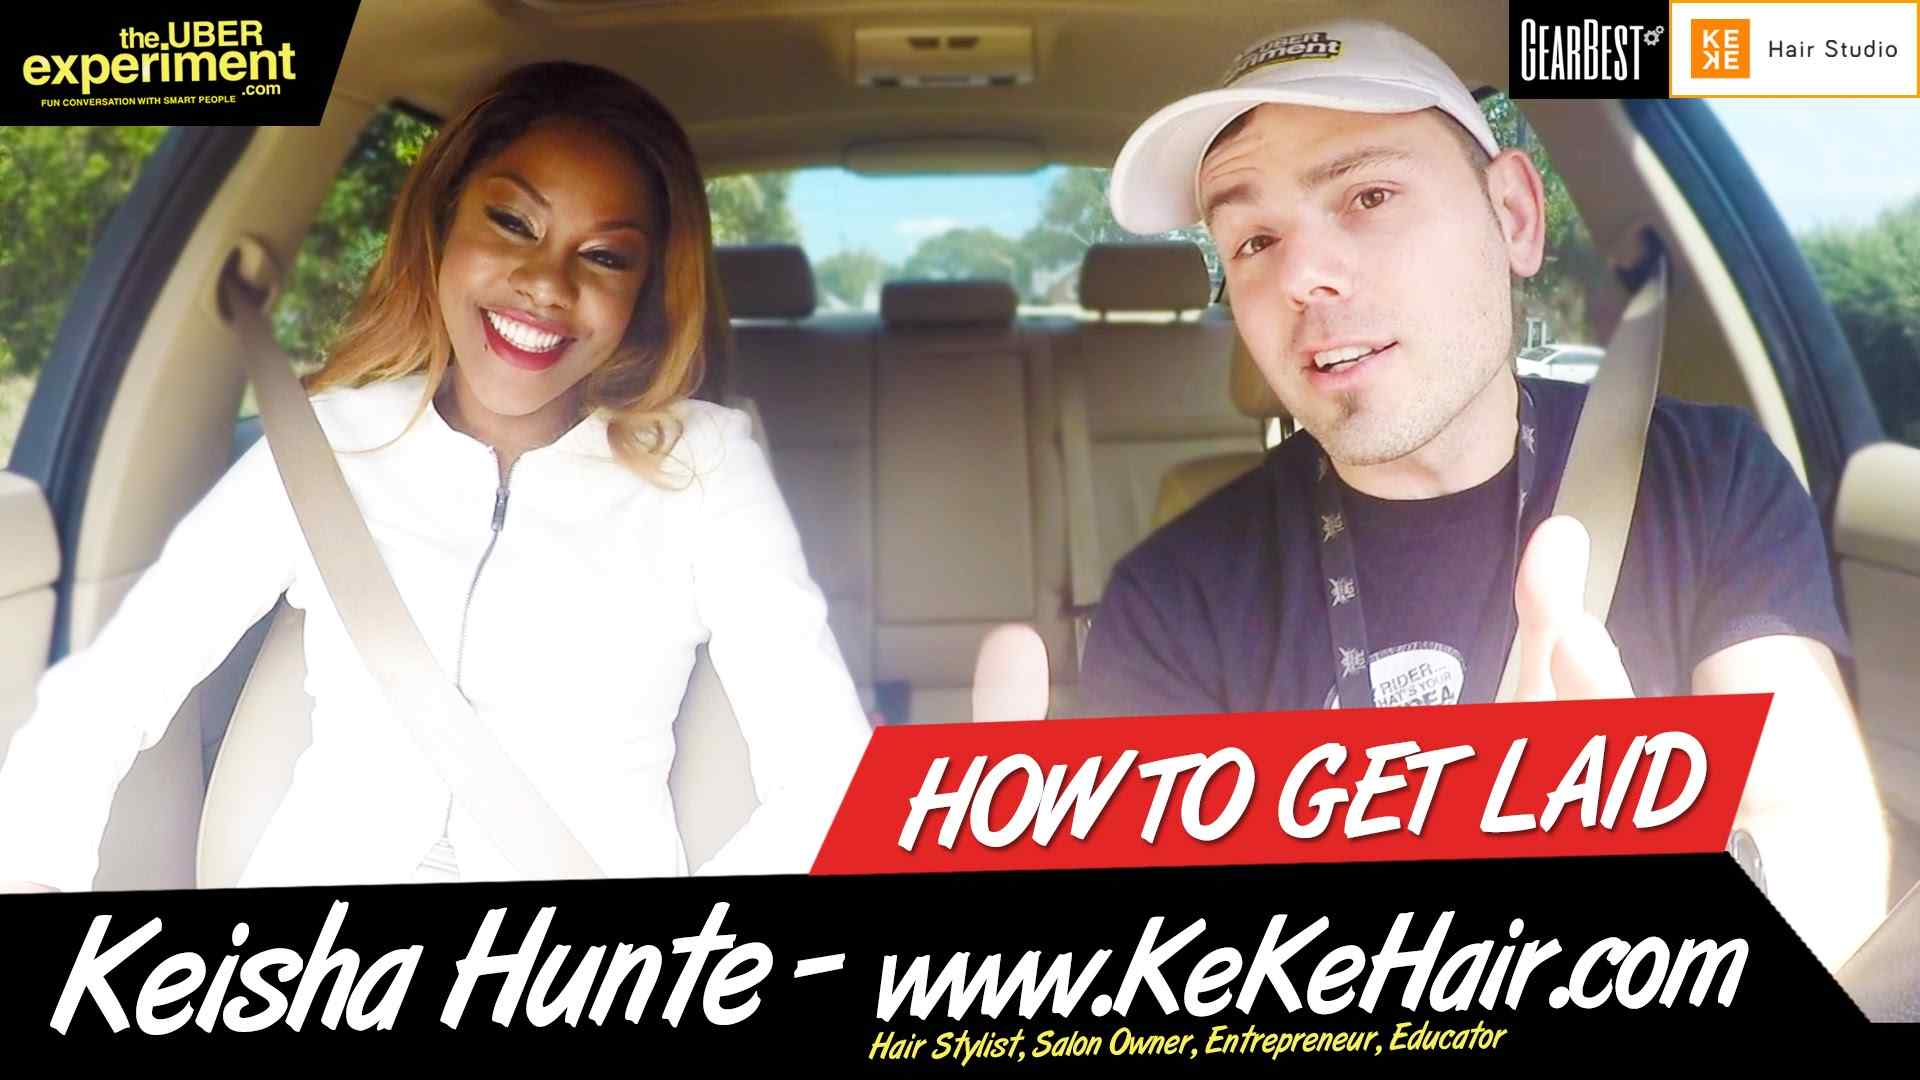 Womenpreneur & Hair Salon Owner KEISHA HUNTE on MARKETING & GETTING LAID - The UBER Experiment